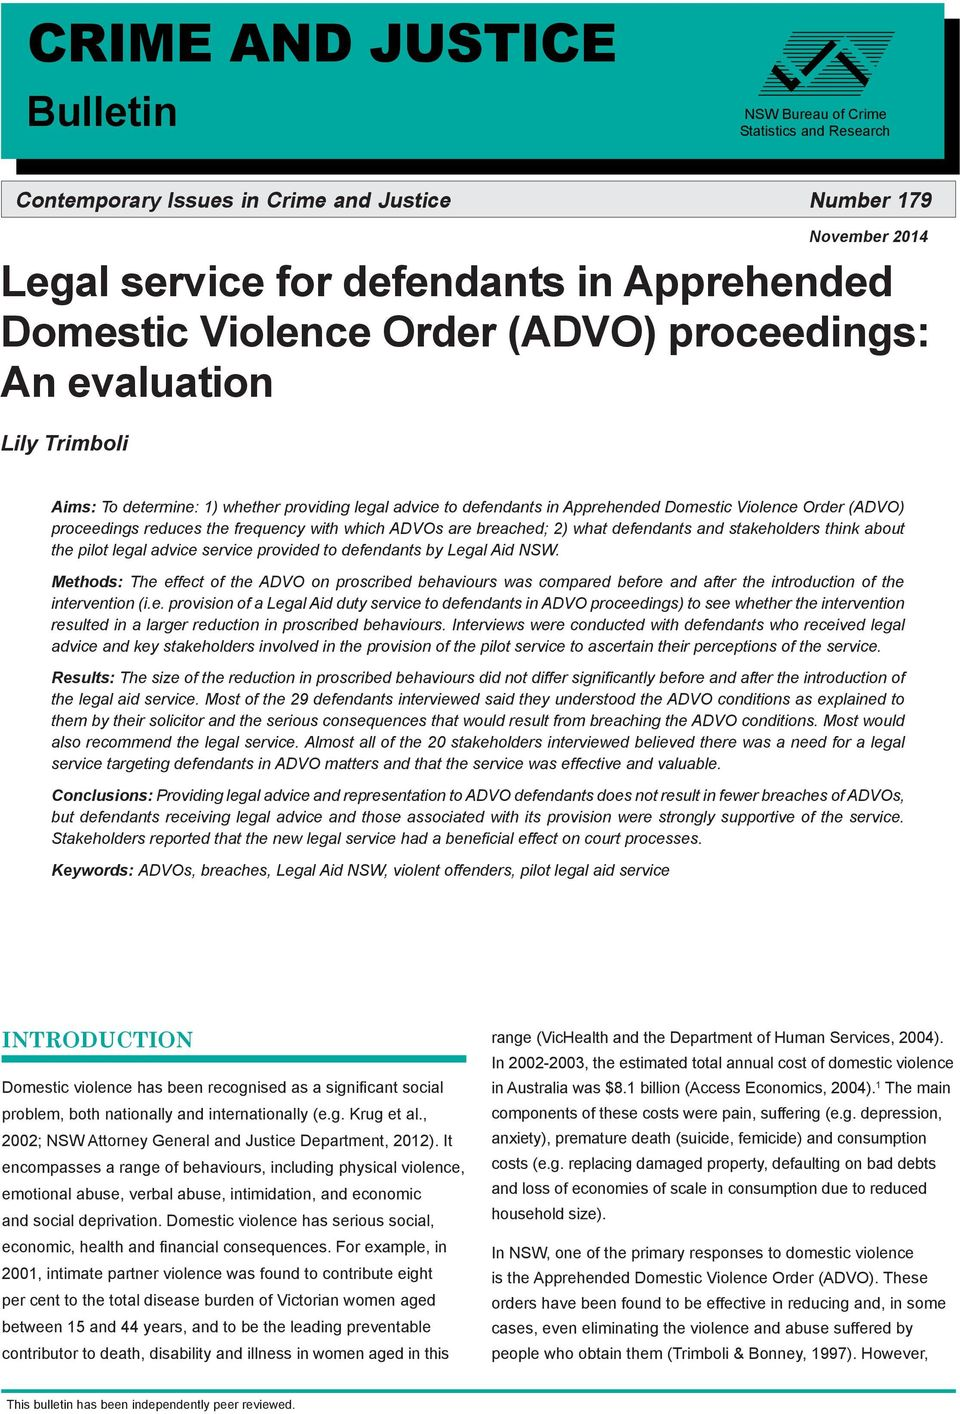 frequency with which ADVOs are breached; 2) what defendants and stakeholders think about the pilot legal advice service provided to defendants by Legal Aid NSW.